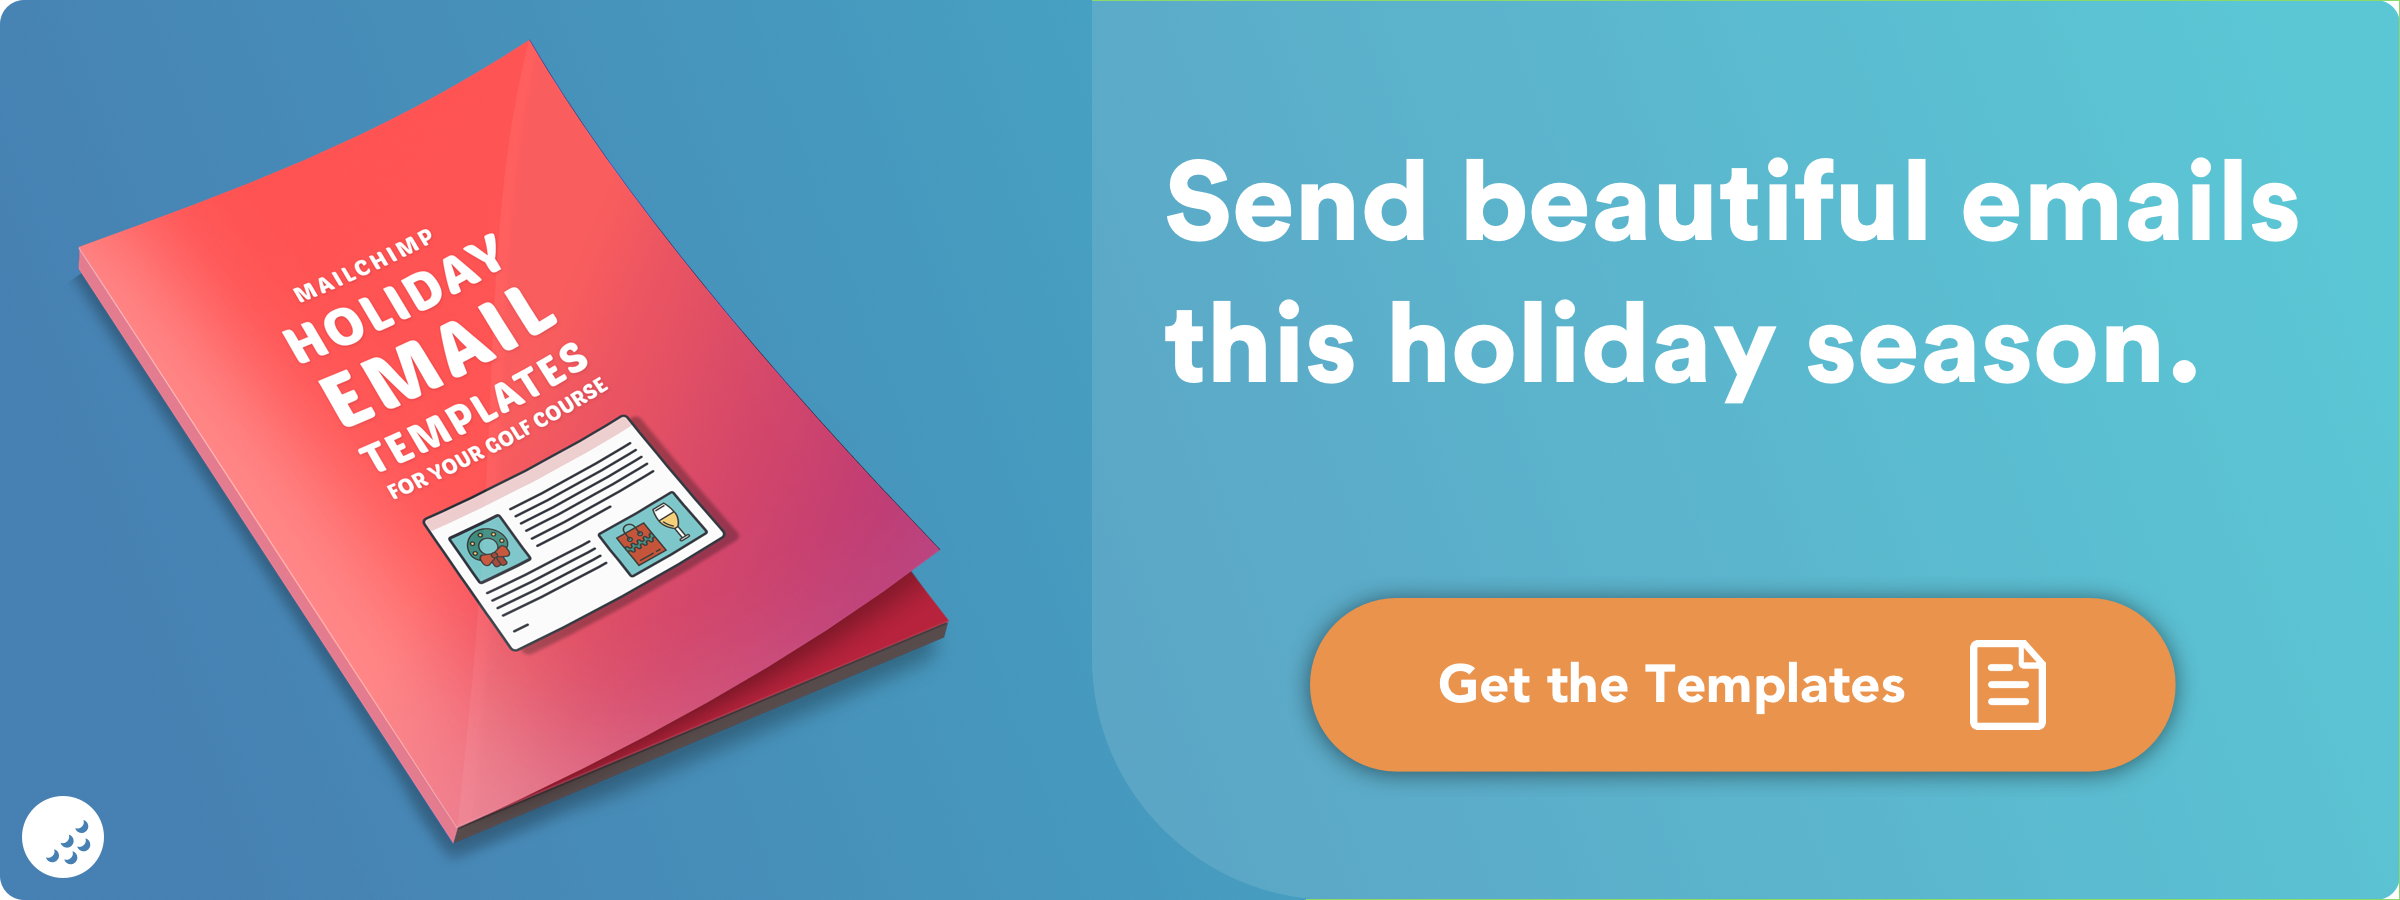 holiday-email-templates-blog-banner-1